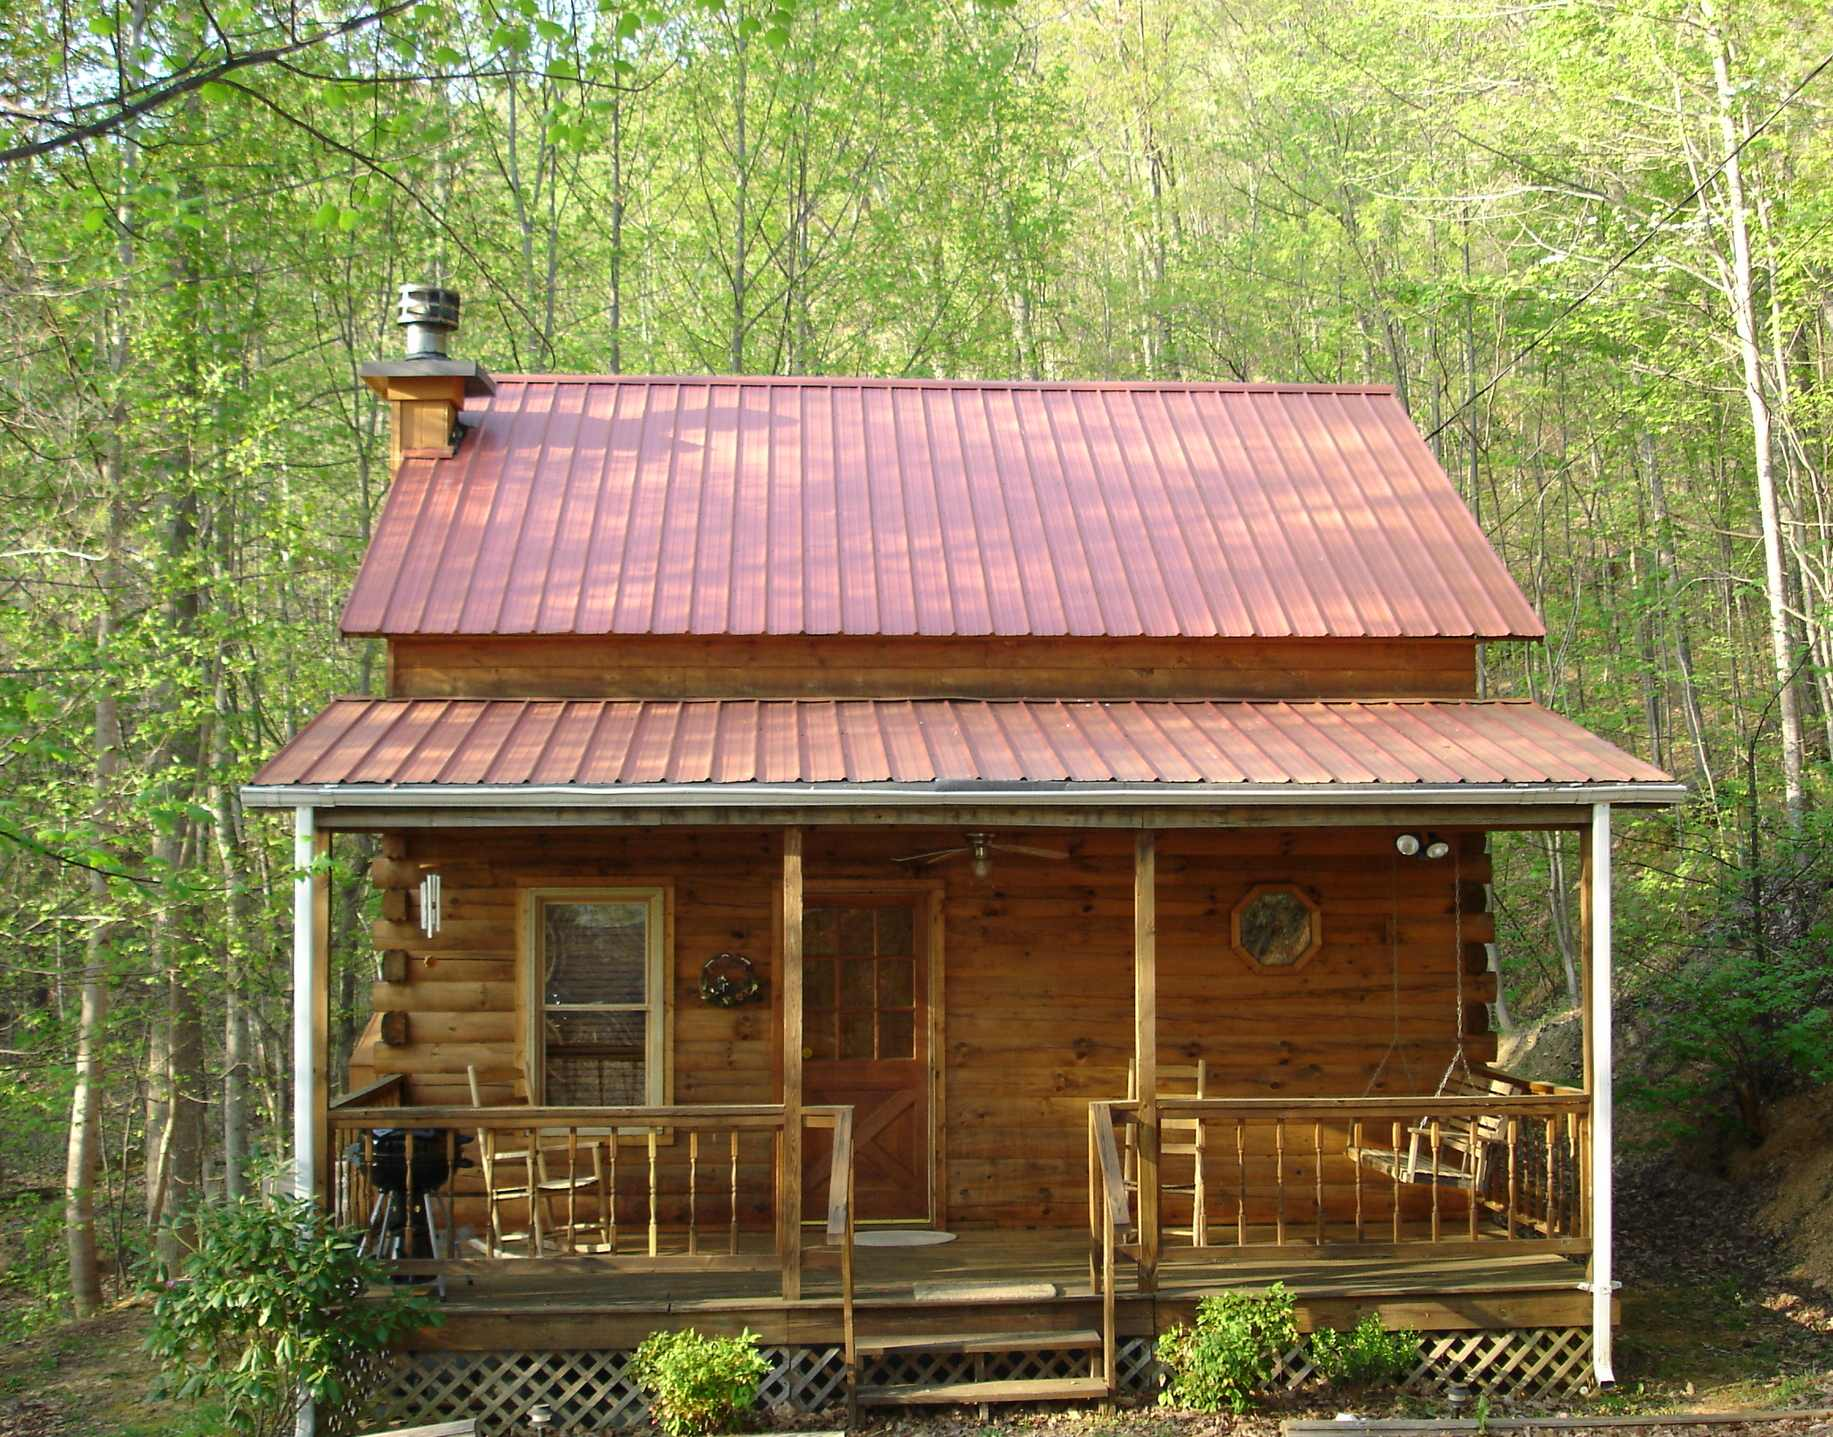 Rustic Cabin With A Loft http://www.smoky-mountain-properties.com/wearsvalleycabins.htm